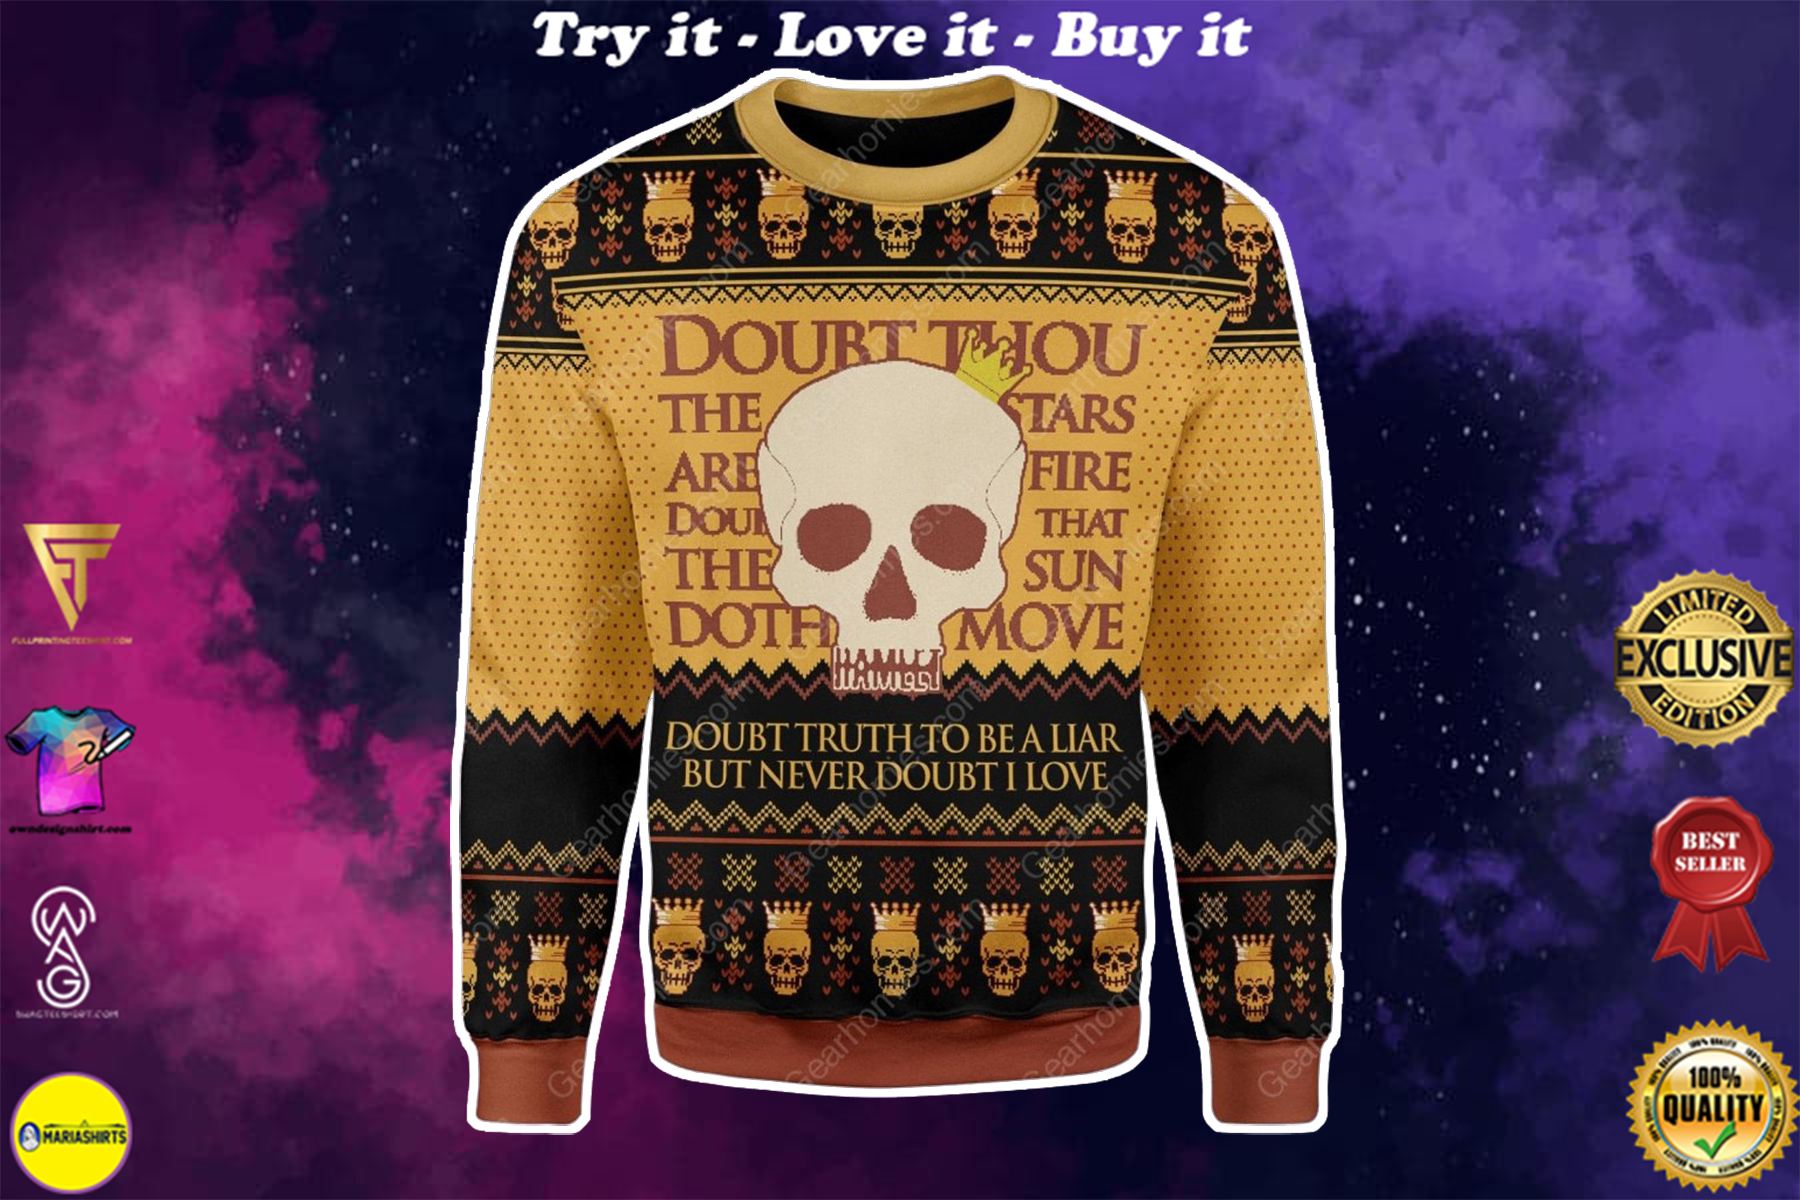 hamlet william shakespeare doubt truth to be a liar ugly christmas sweater